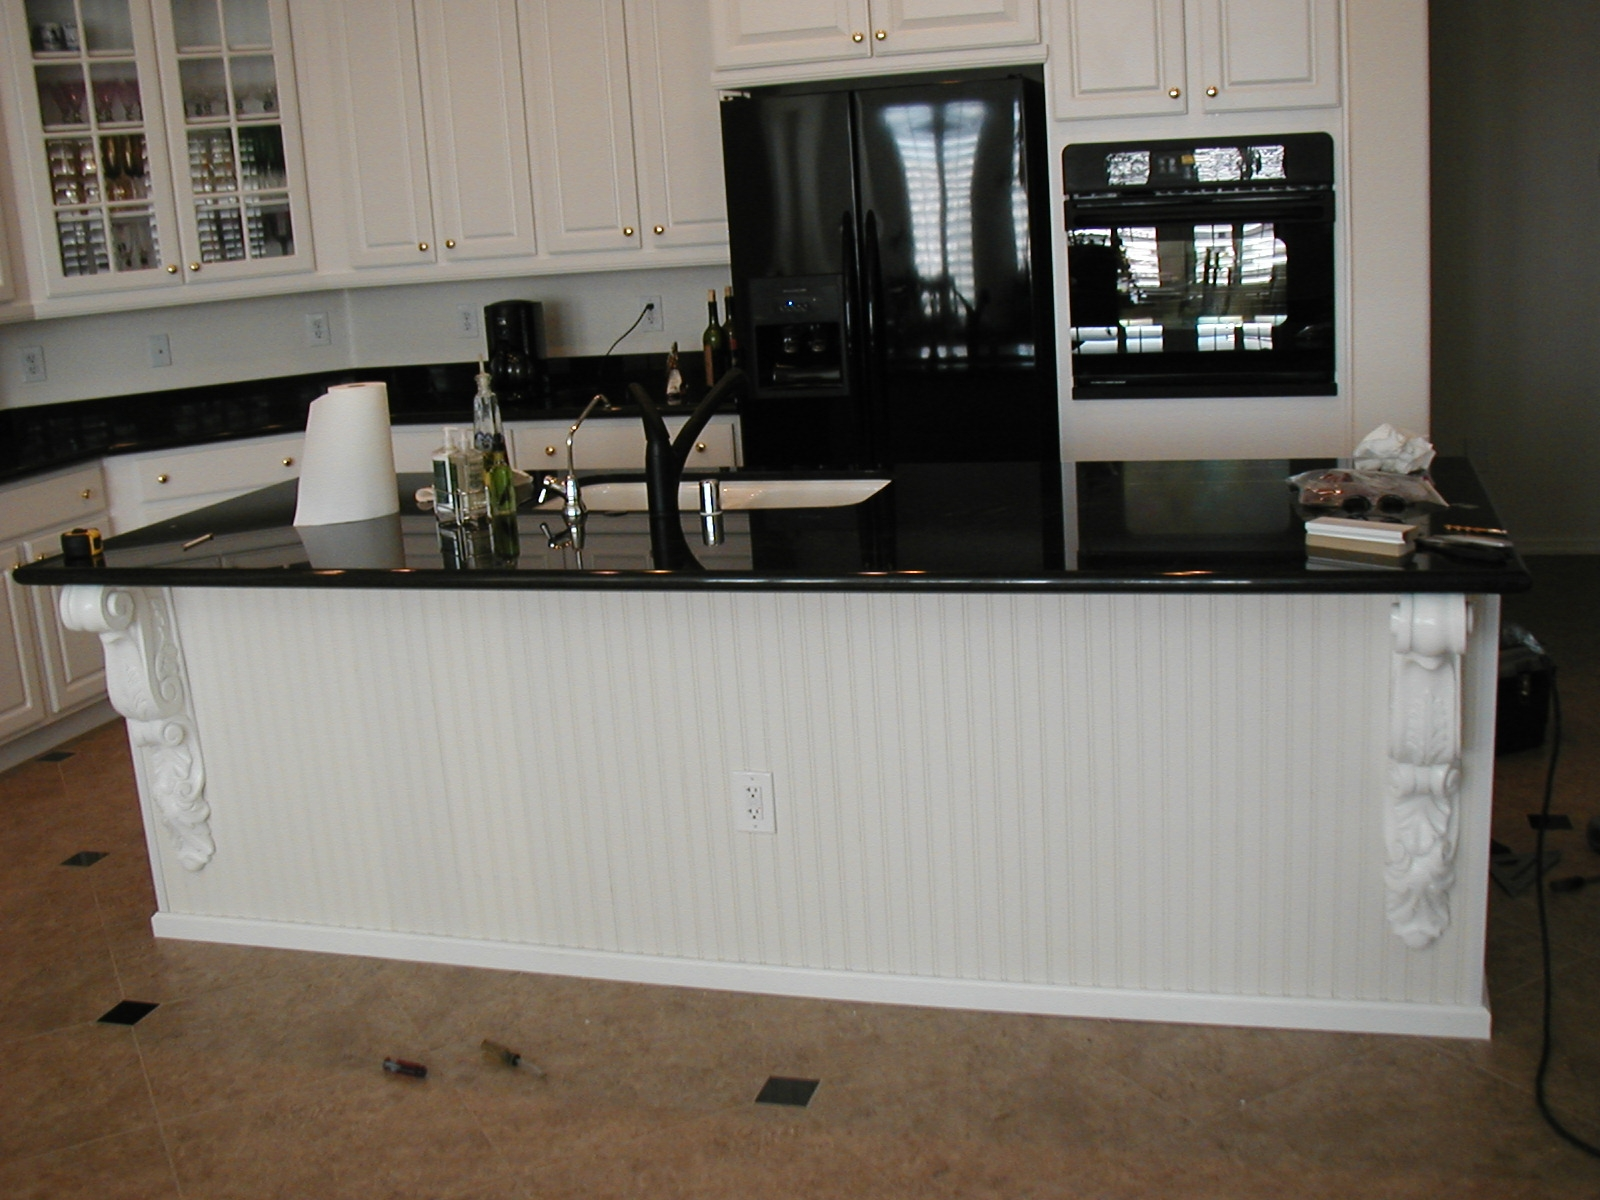 White Galley Kitchen With Black Appliances Perfect Kitchens With Black Appliances And White Cabinets In A